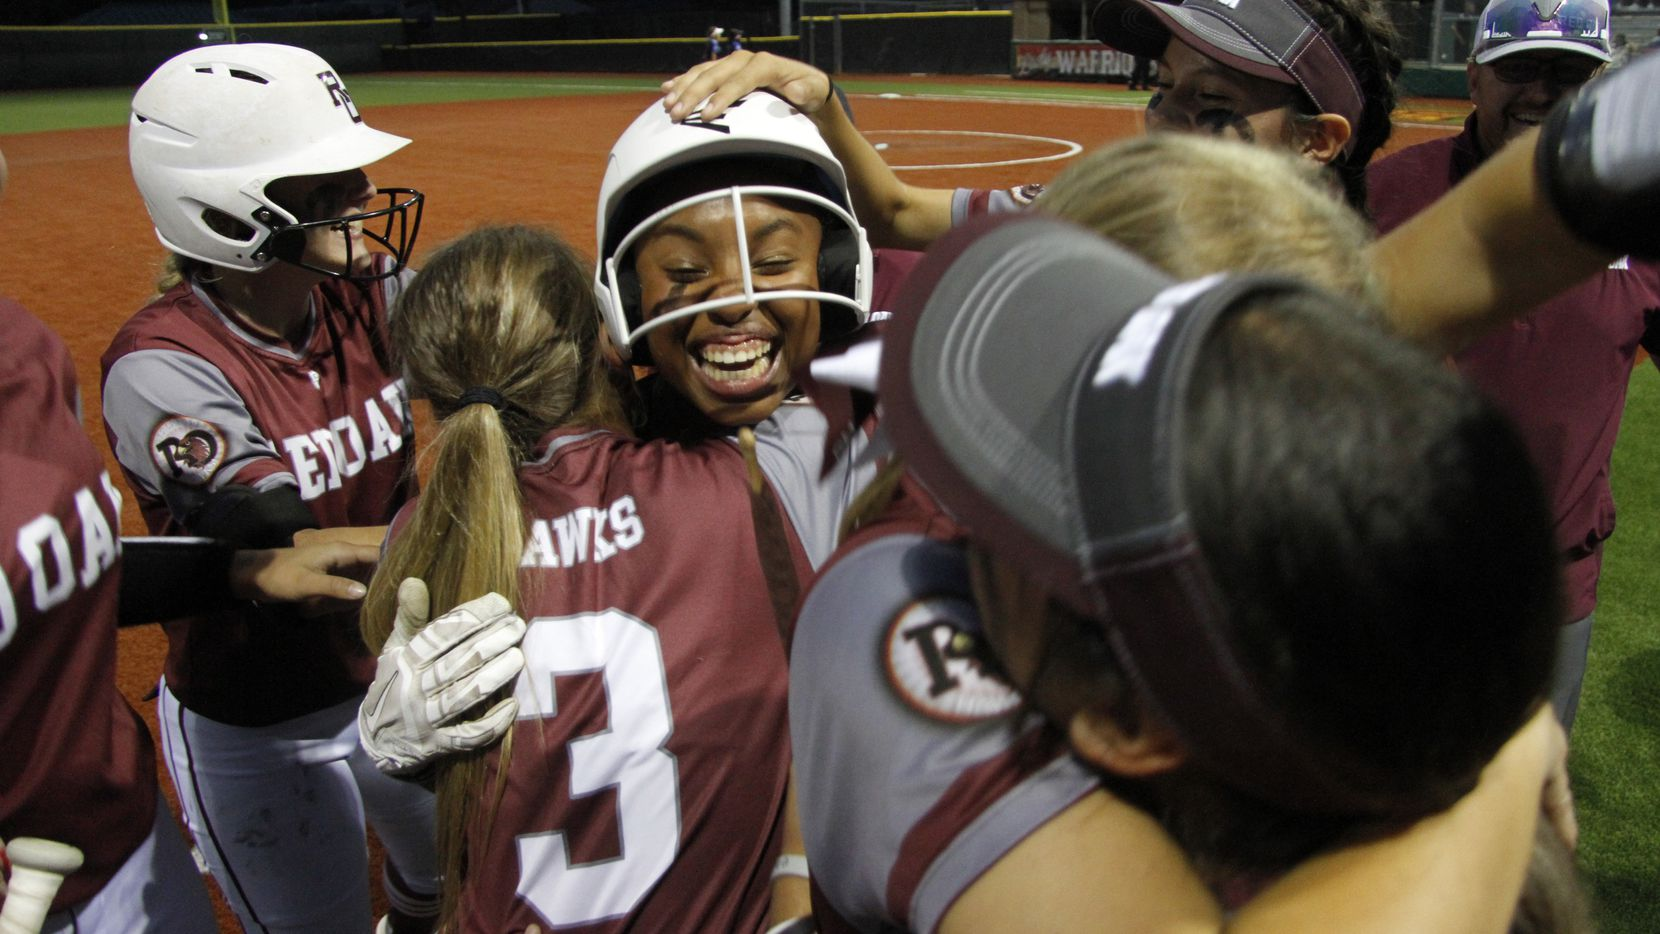 Brianna Evans (center) is mobbed by teammates after her walk-off run-scoring hit in the bottom of the seventh gave Red Oak an 8-7 win over North Forney in Game 1 of a best-of-3 Class 5A bi-district playoff series. (Steve Hamm/Special Contributor)